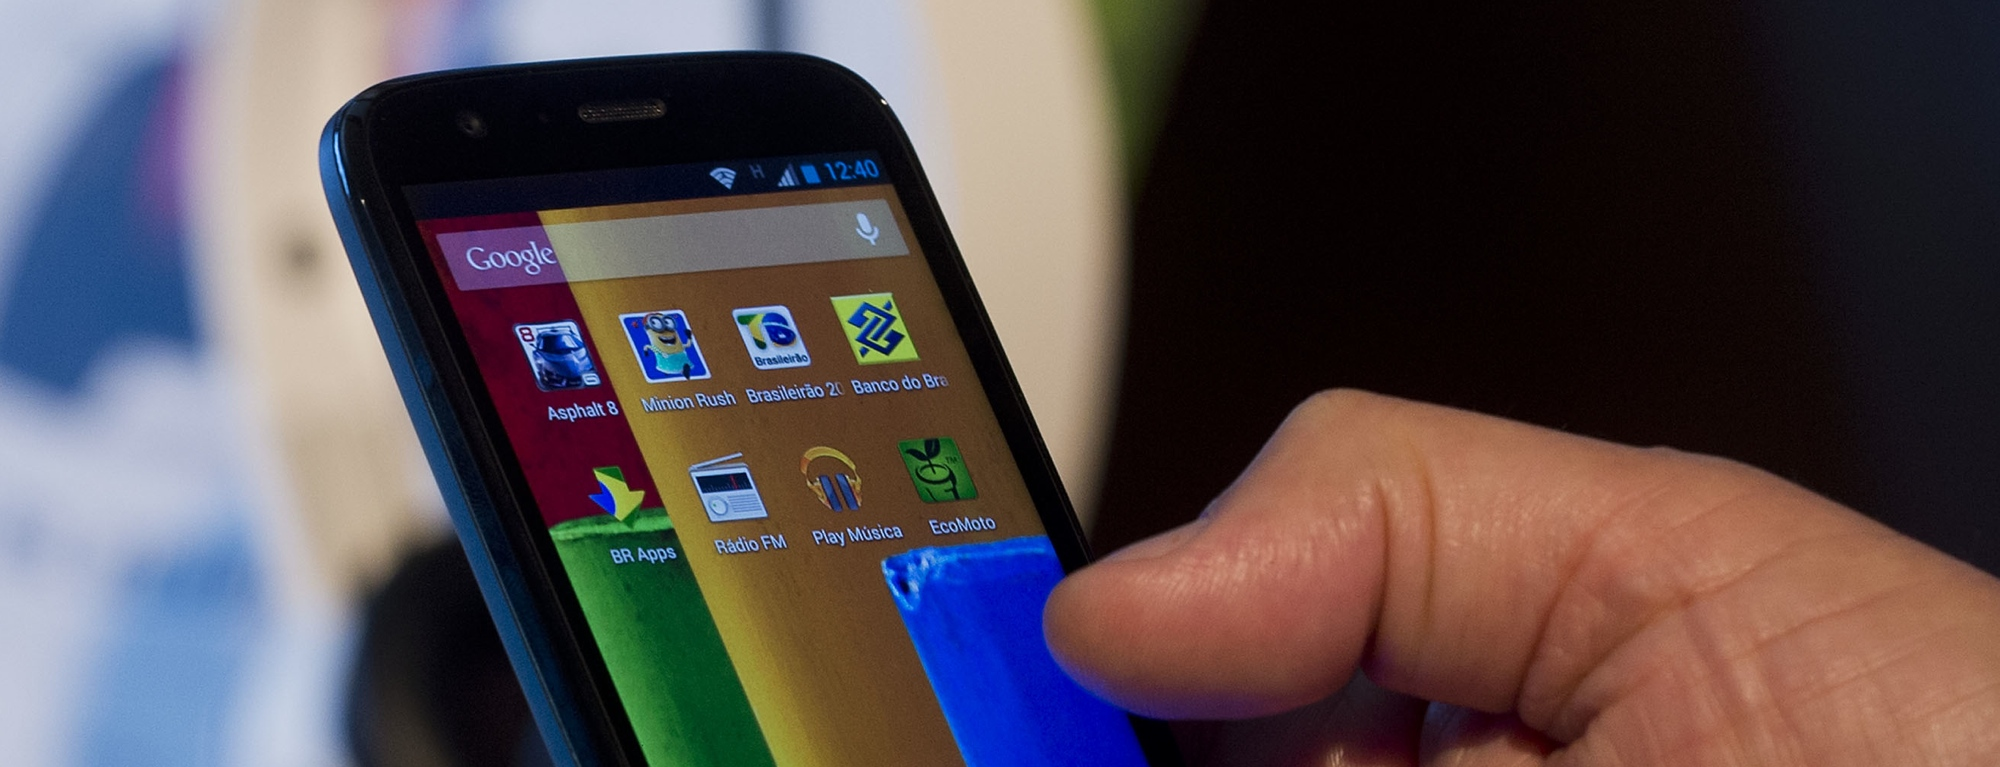 Make your Android Device Smarter with these Handy Apps